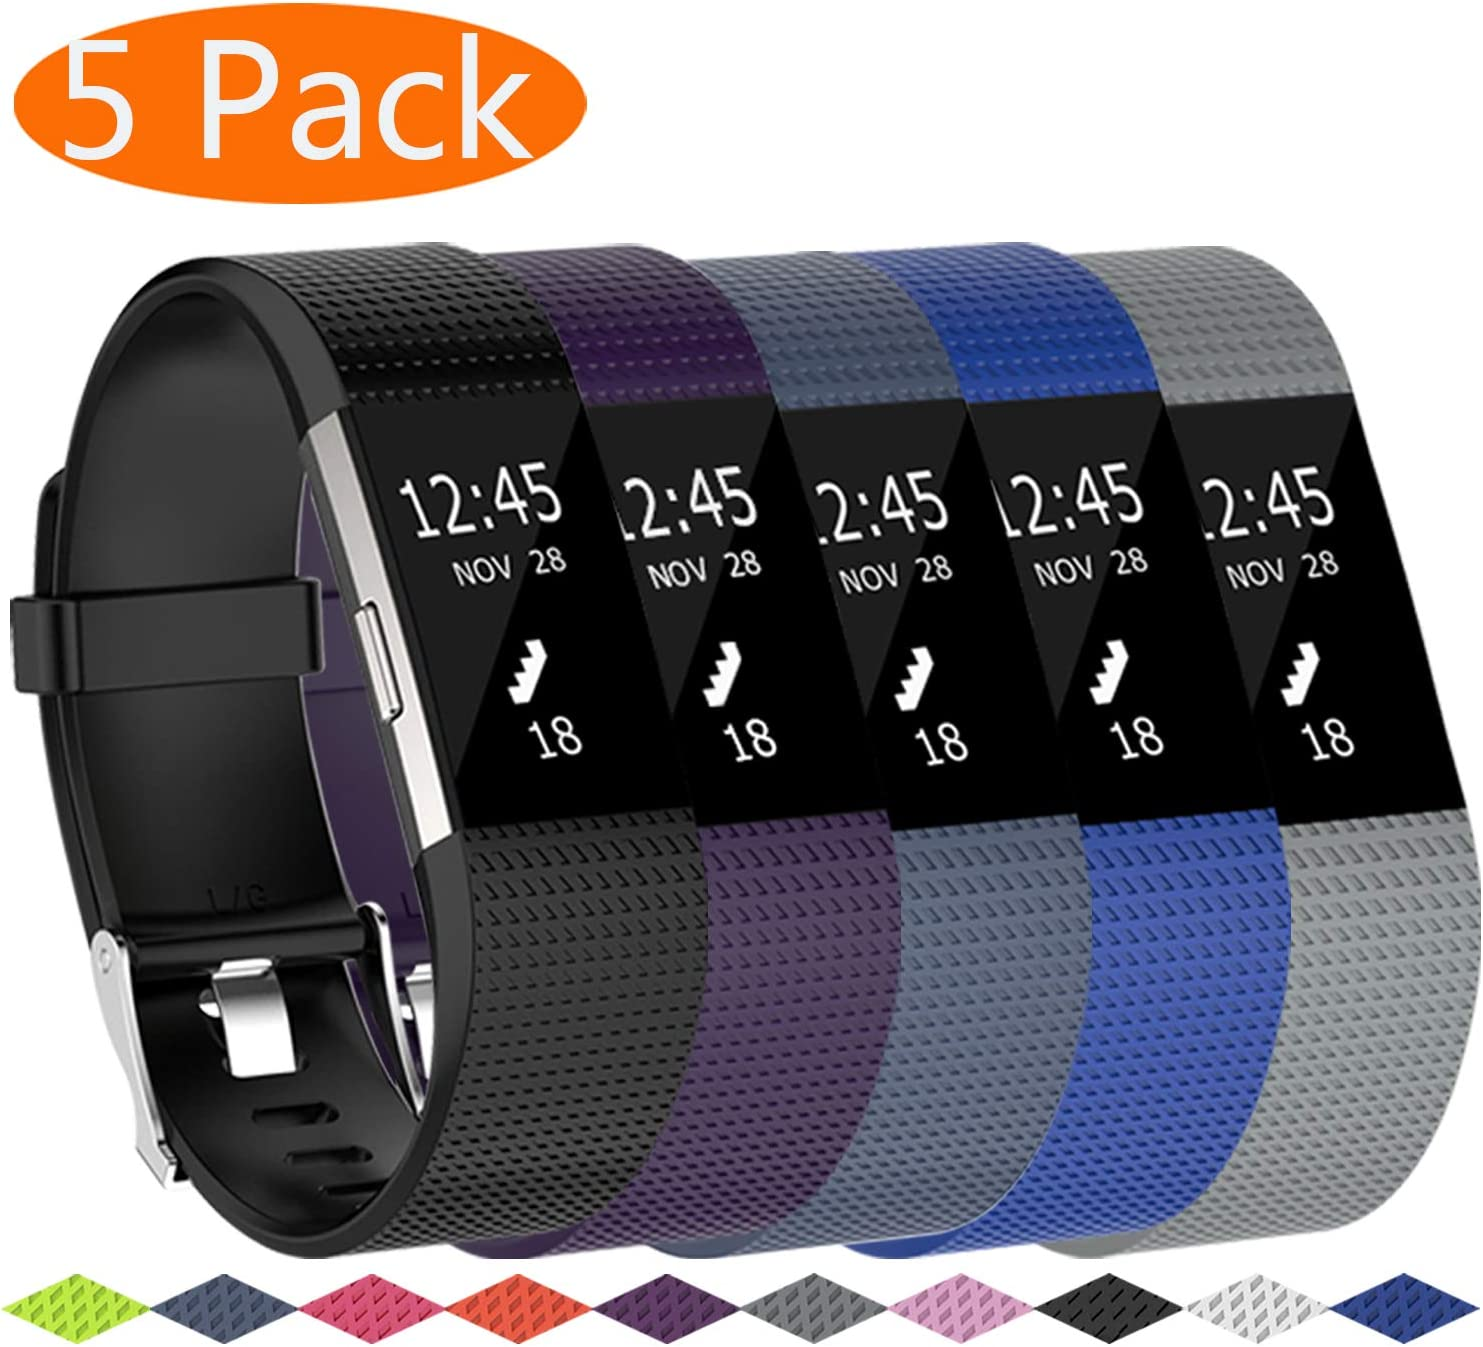 Metal Buckle Fitness Wristband KingAcc Compatible Fitbit Charge 2 Bands Soft Silicone Replacement Band for Fitbit Charge 2 Large Small 3-Pack Sport Strap for Women Men